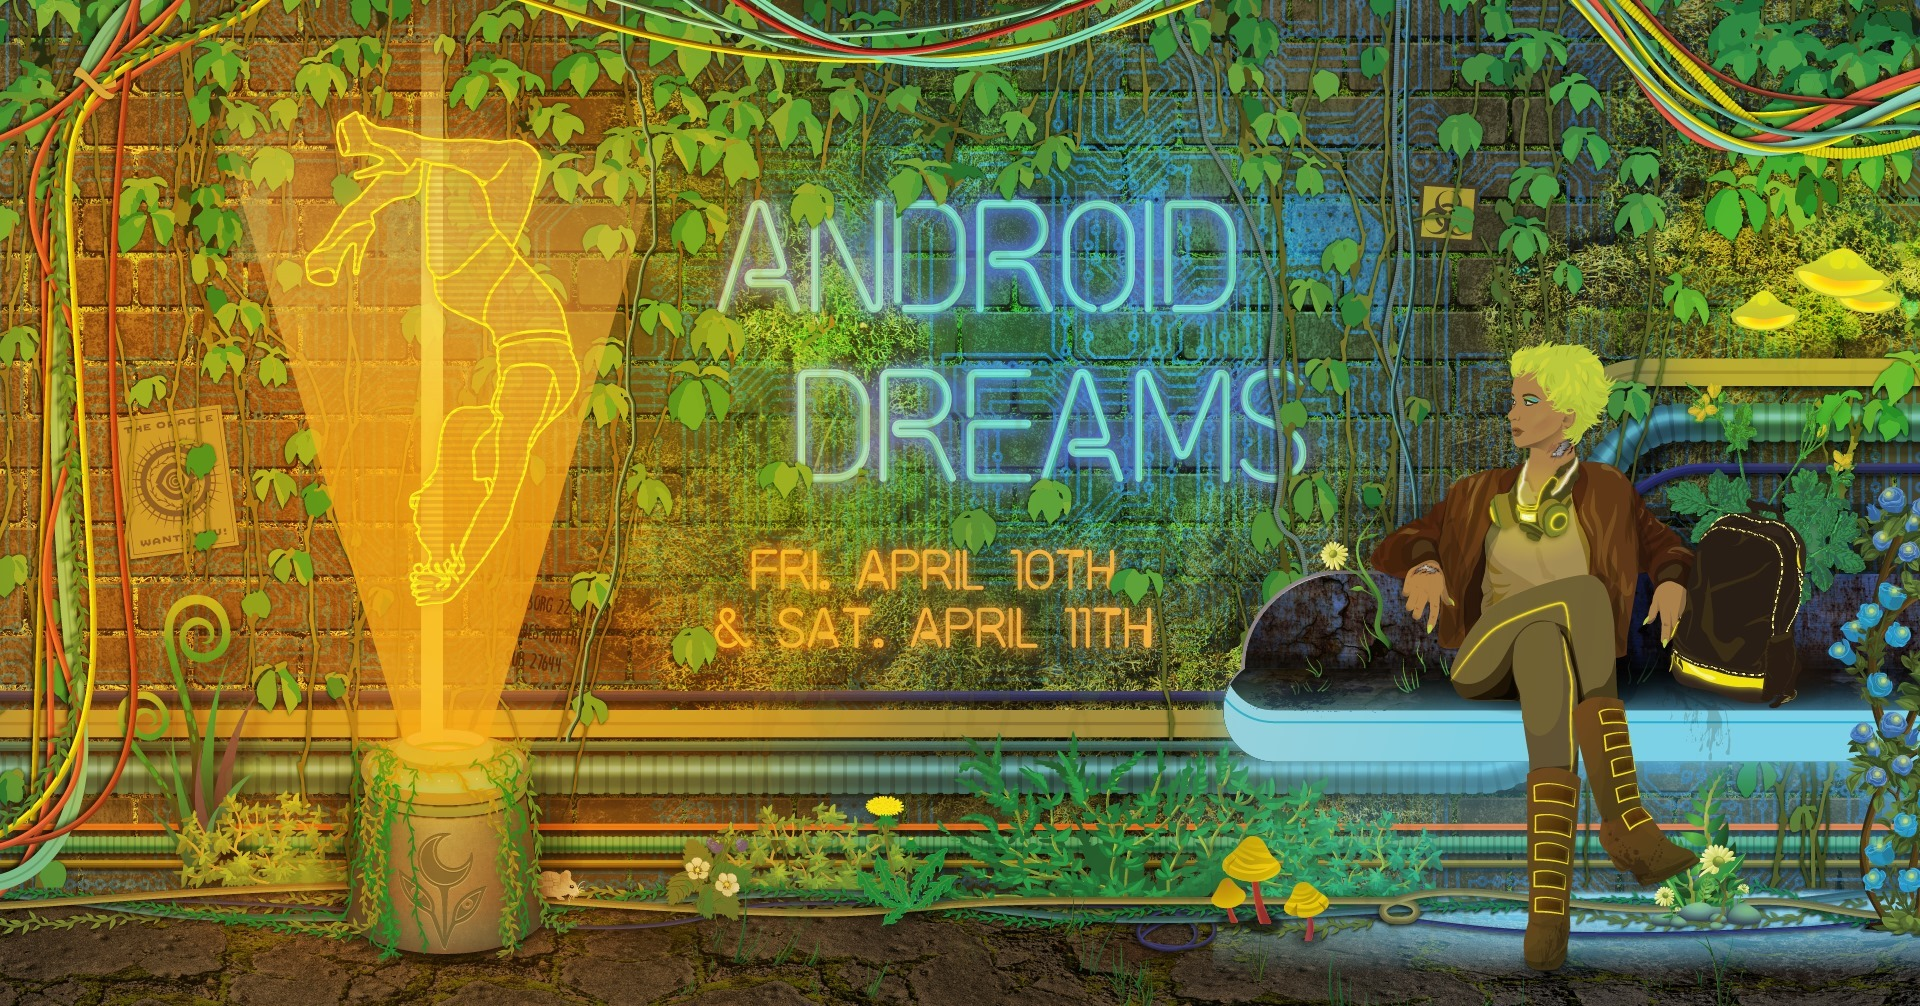 Android Dreams II: Cyberpunk Pole Dance + Burlesque